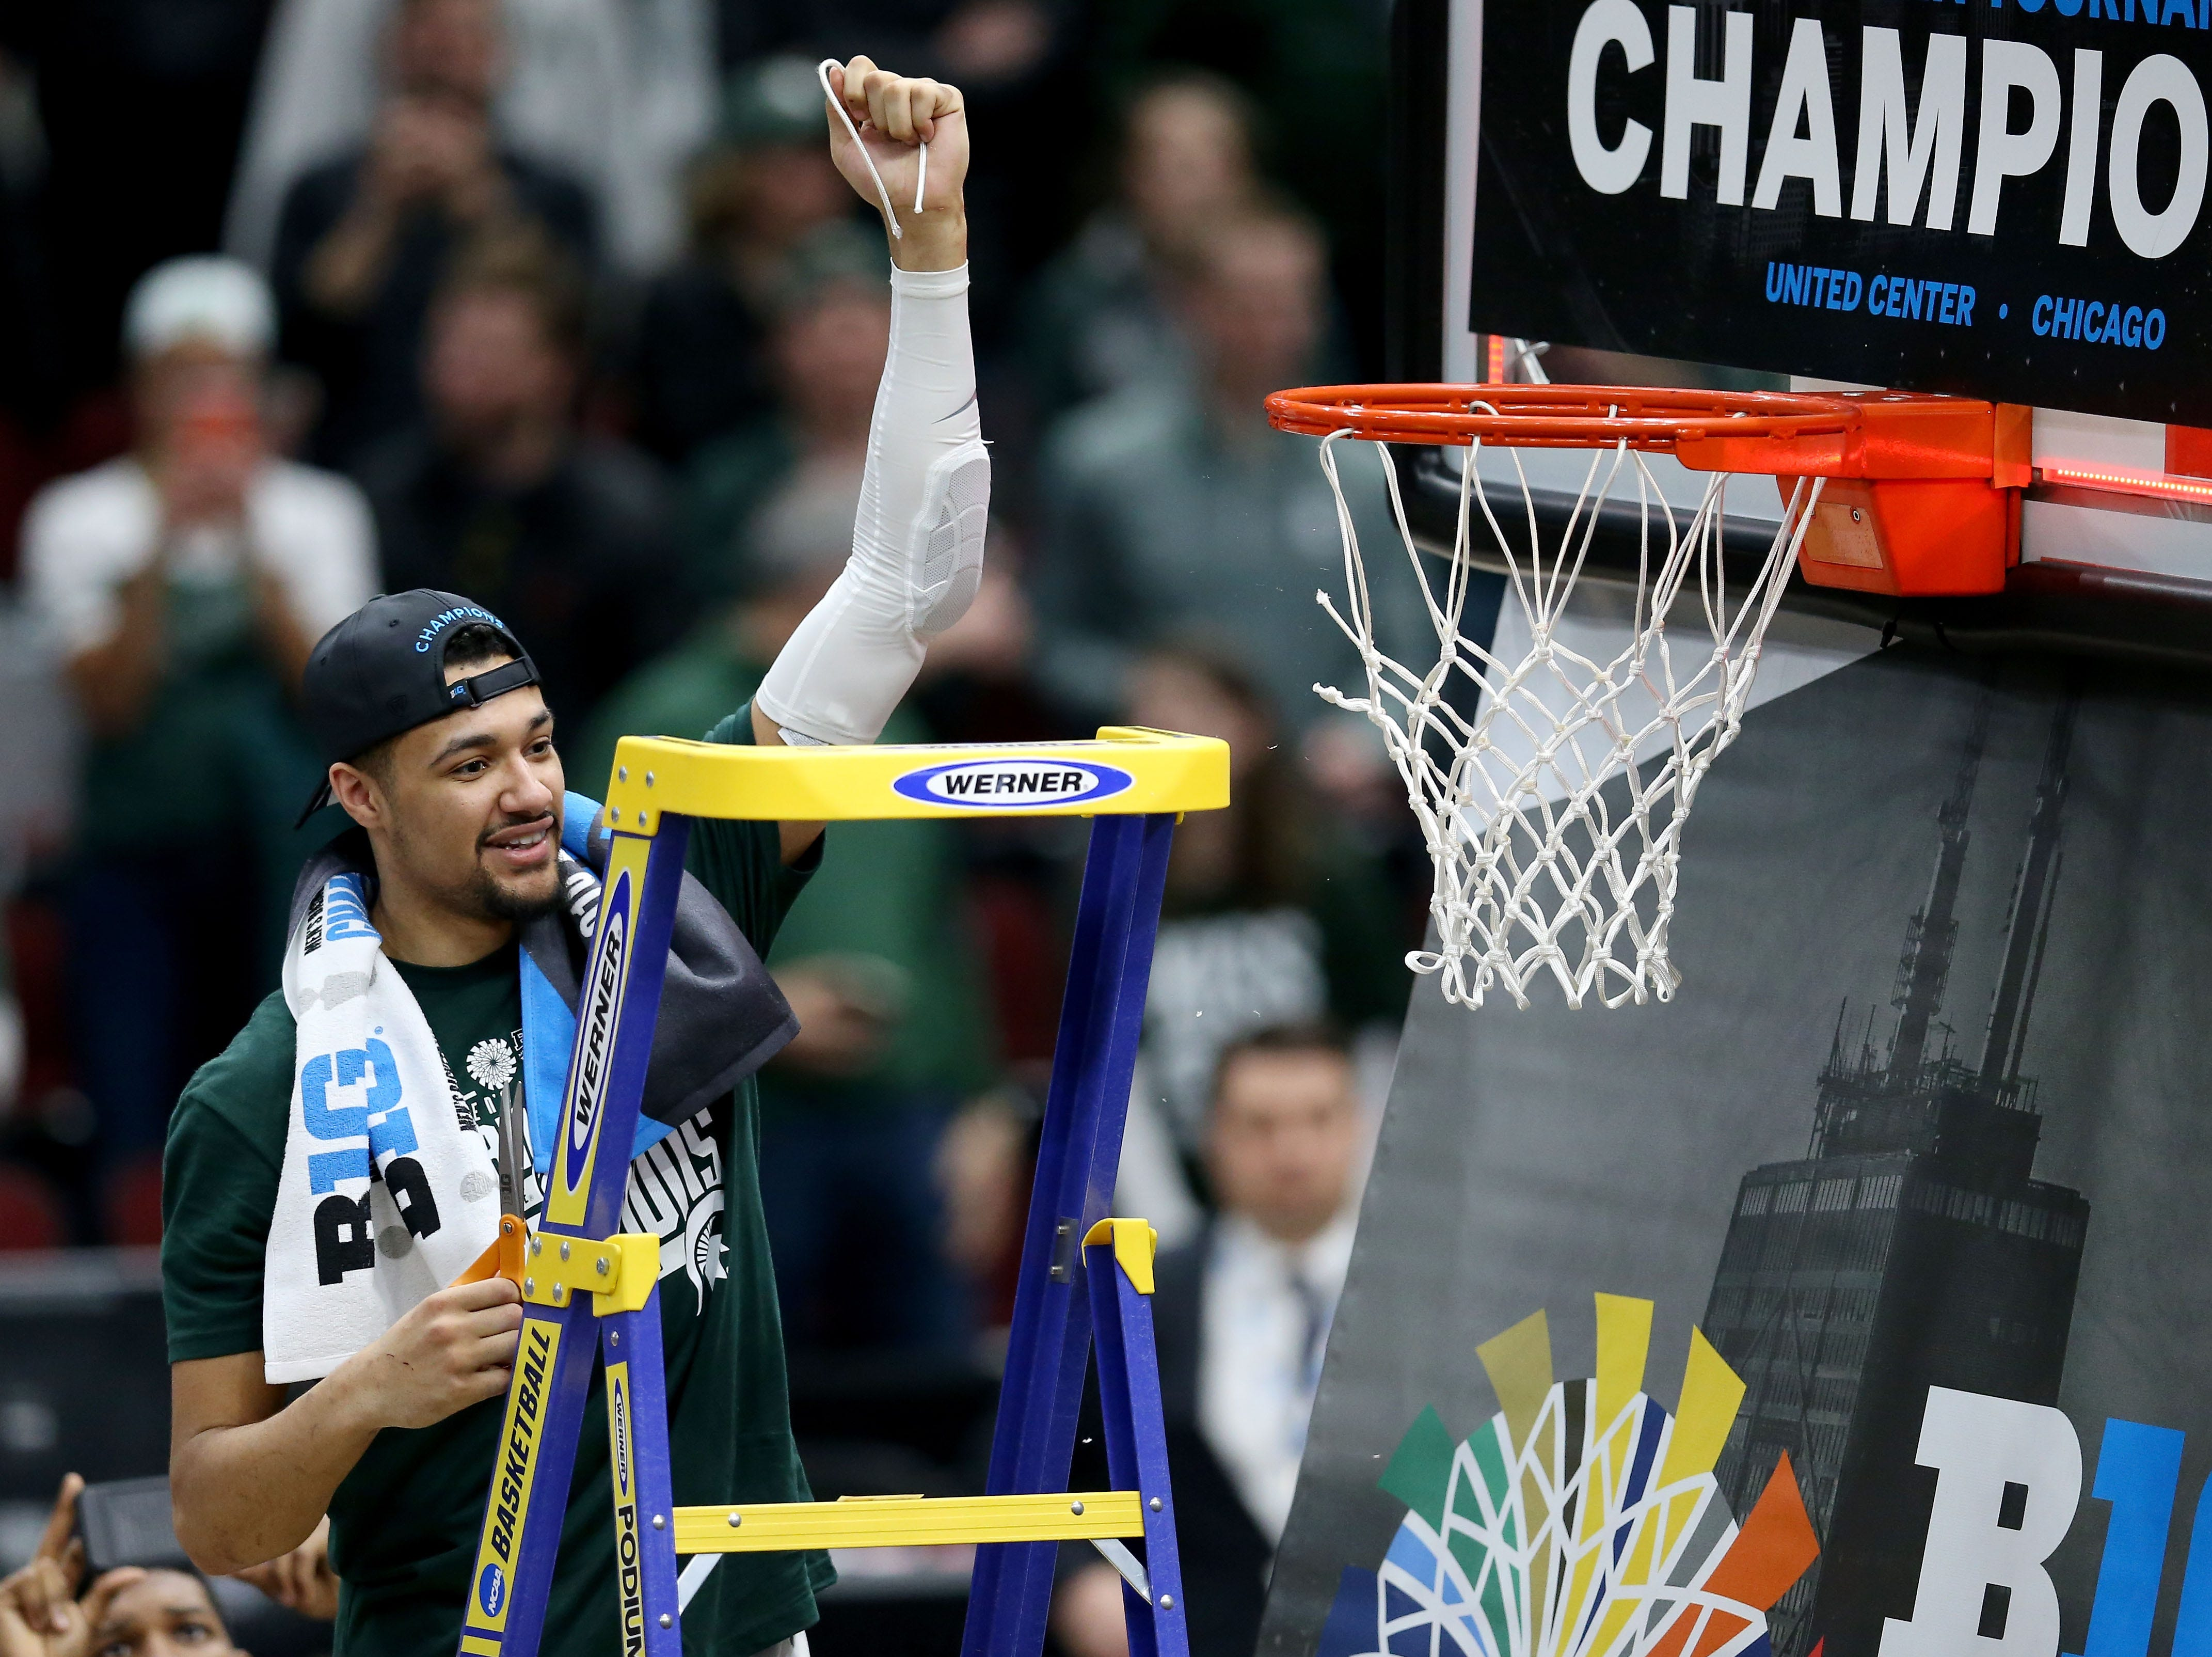 CHICAGO, ILLINOIS - MARCH 17:  Kenny Goins #25 of the Michigan State Spartans cuts down the net after beating the Michigan Wolverines 65-60 in the championship game of the Big Ten Basketball Tournament at the United Center on March 17, 2019 in Chicago, Illinois. (Photo by Dylan Buell/Getty Images)